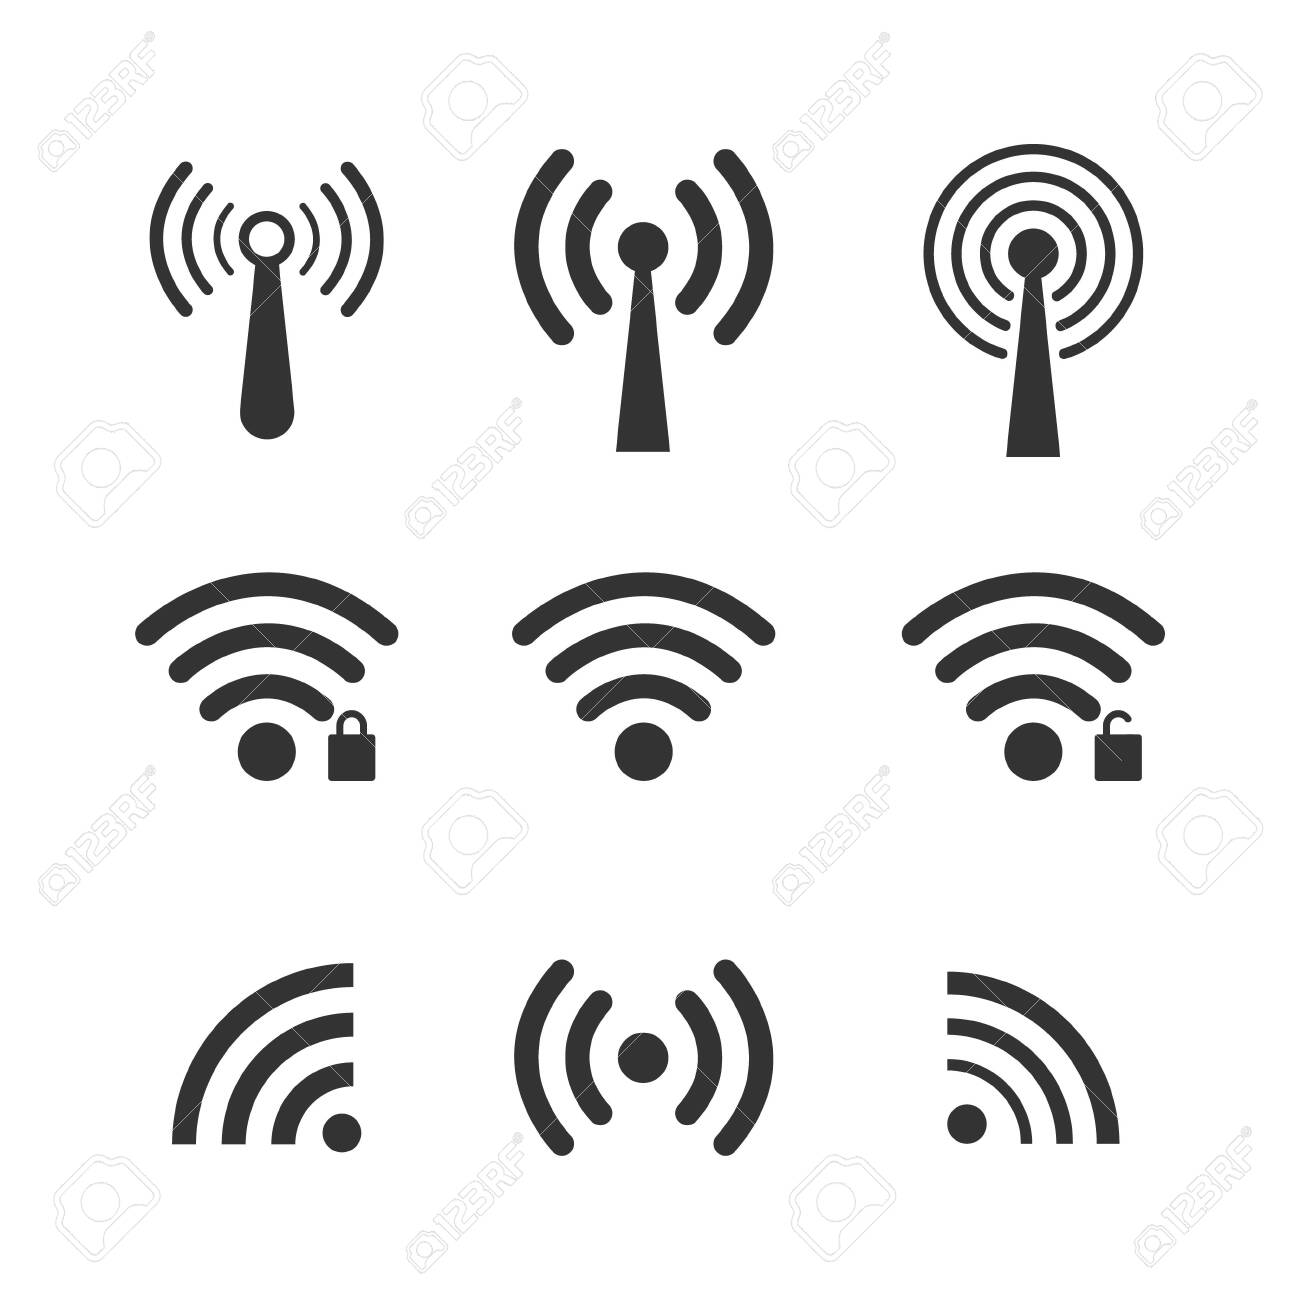 Set of wireless wifi icons, isolated on white background. Vector illustration - 121489792